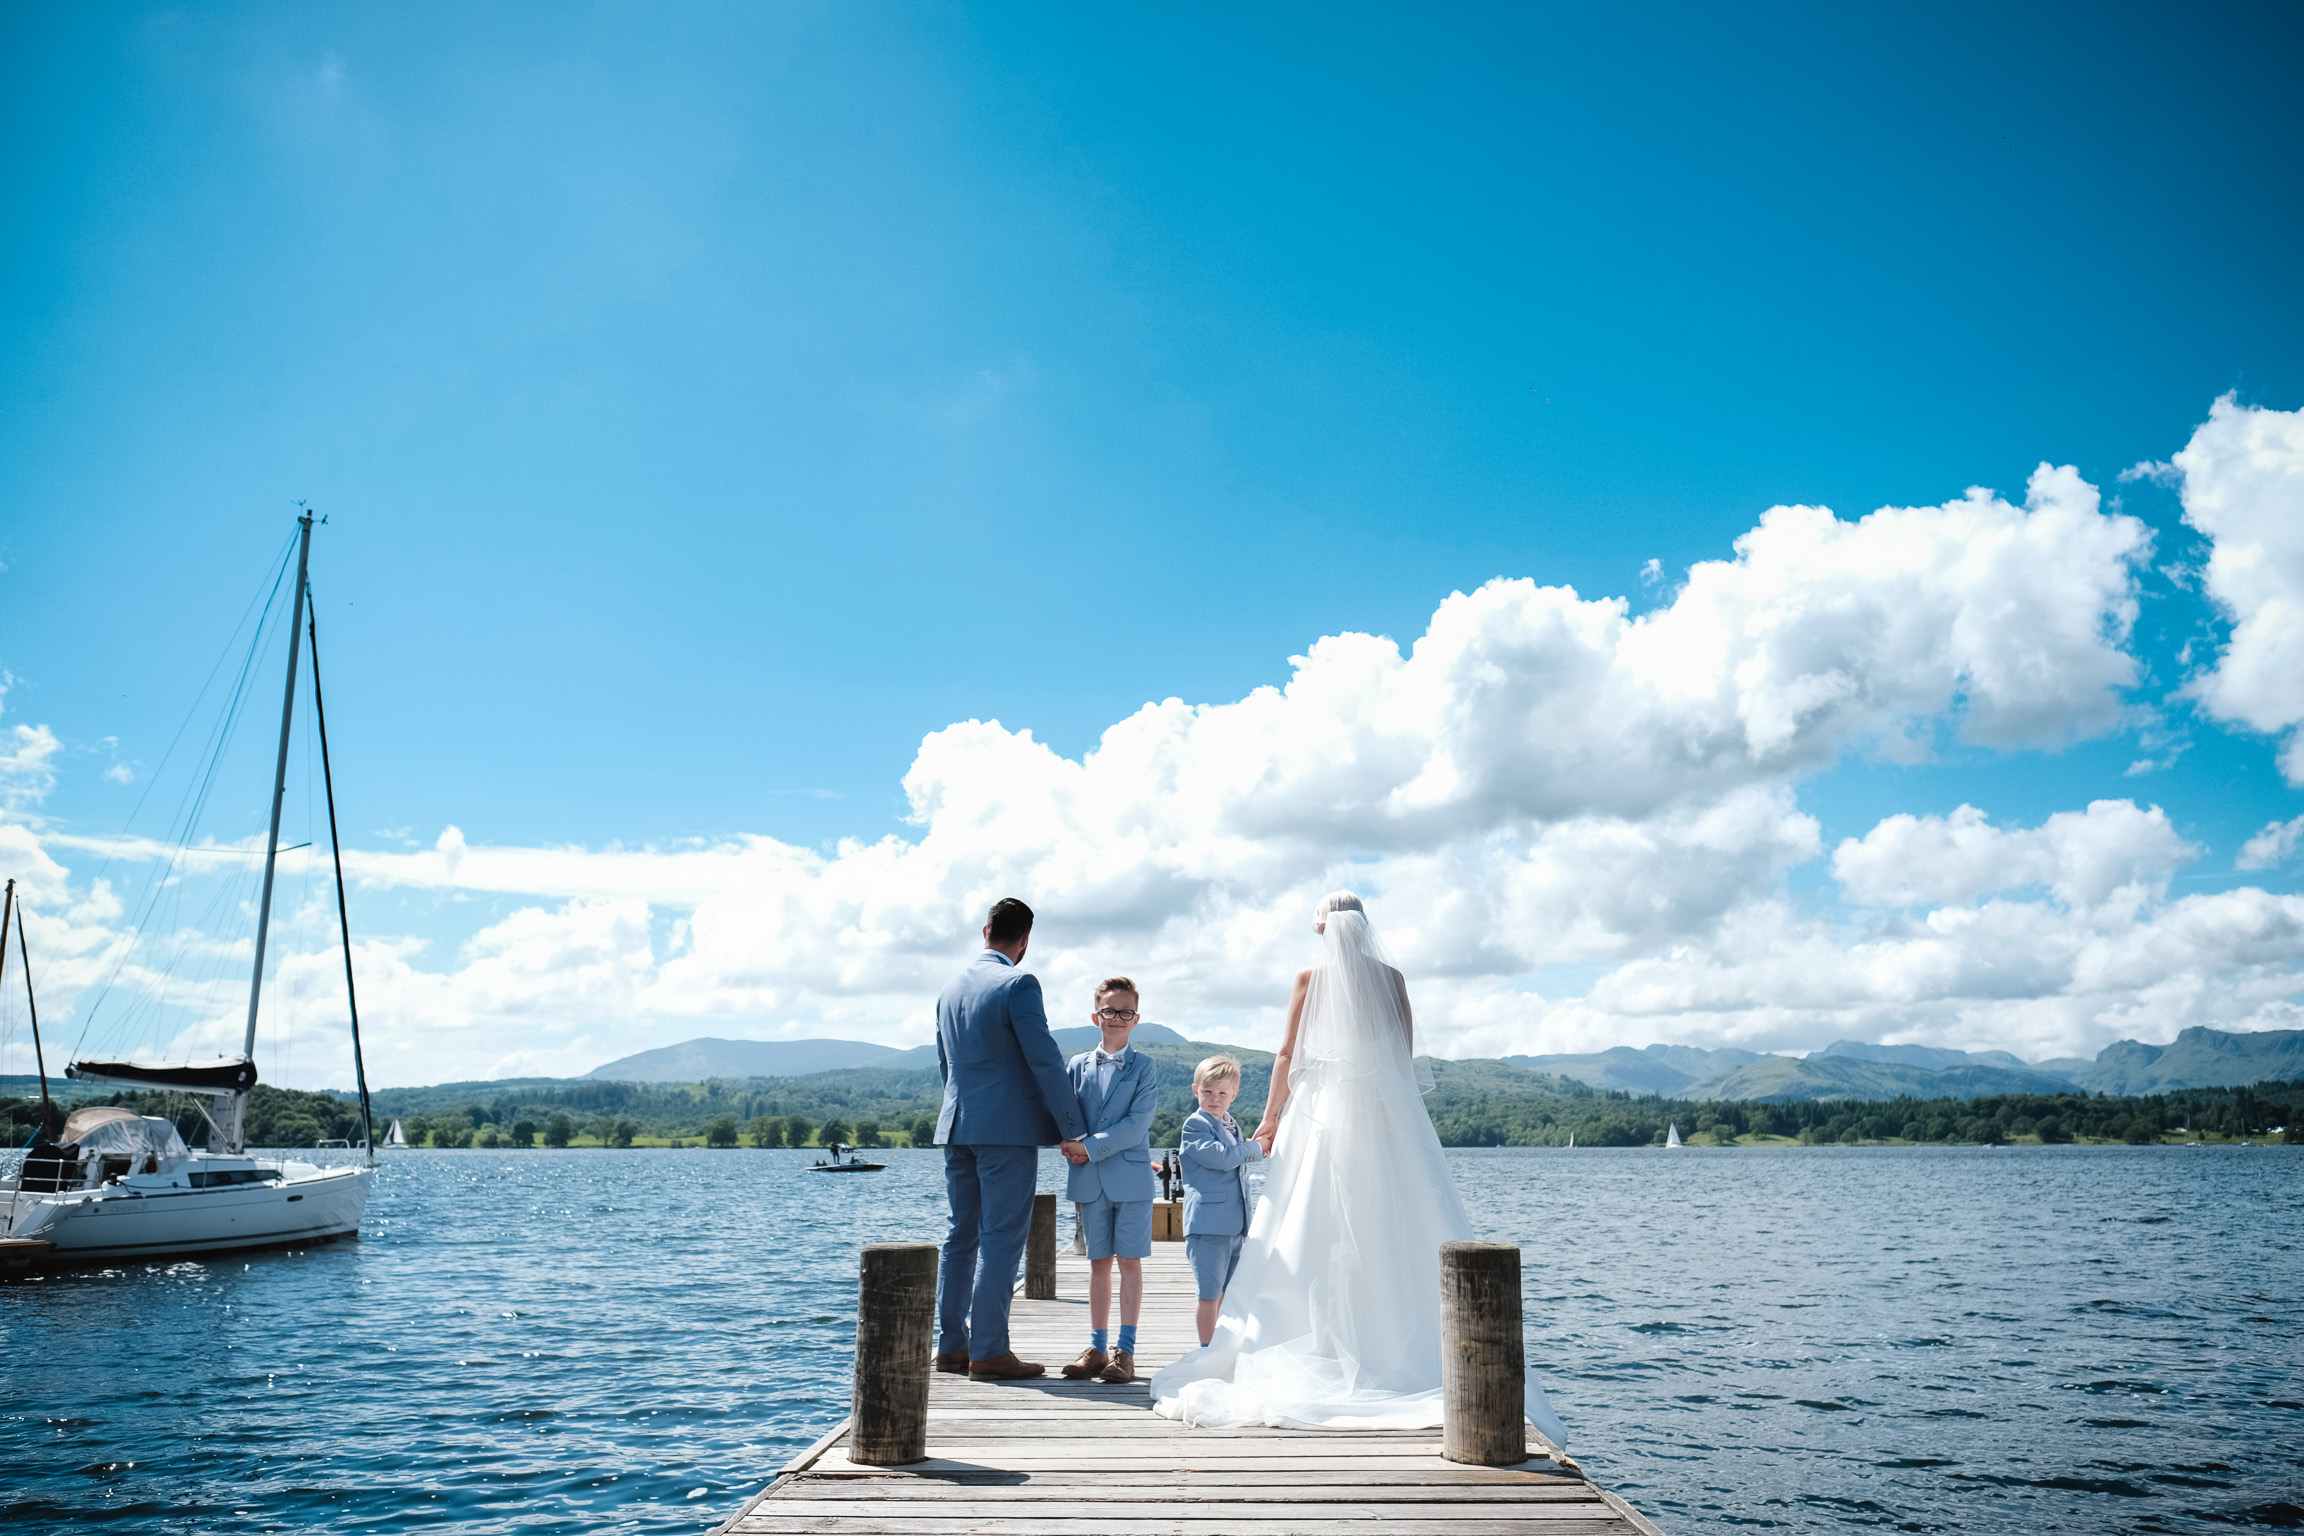 Low wood bay wedding photographer in widermere documentry wedding photography north west cumbria (60 of 131).jpg